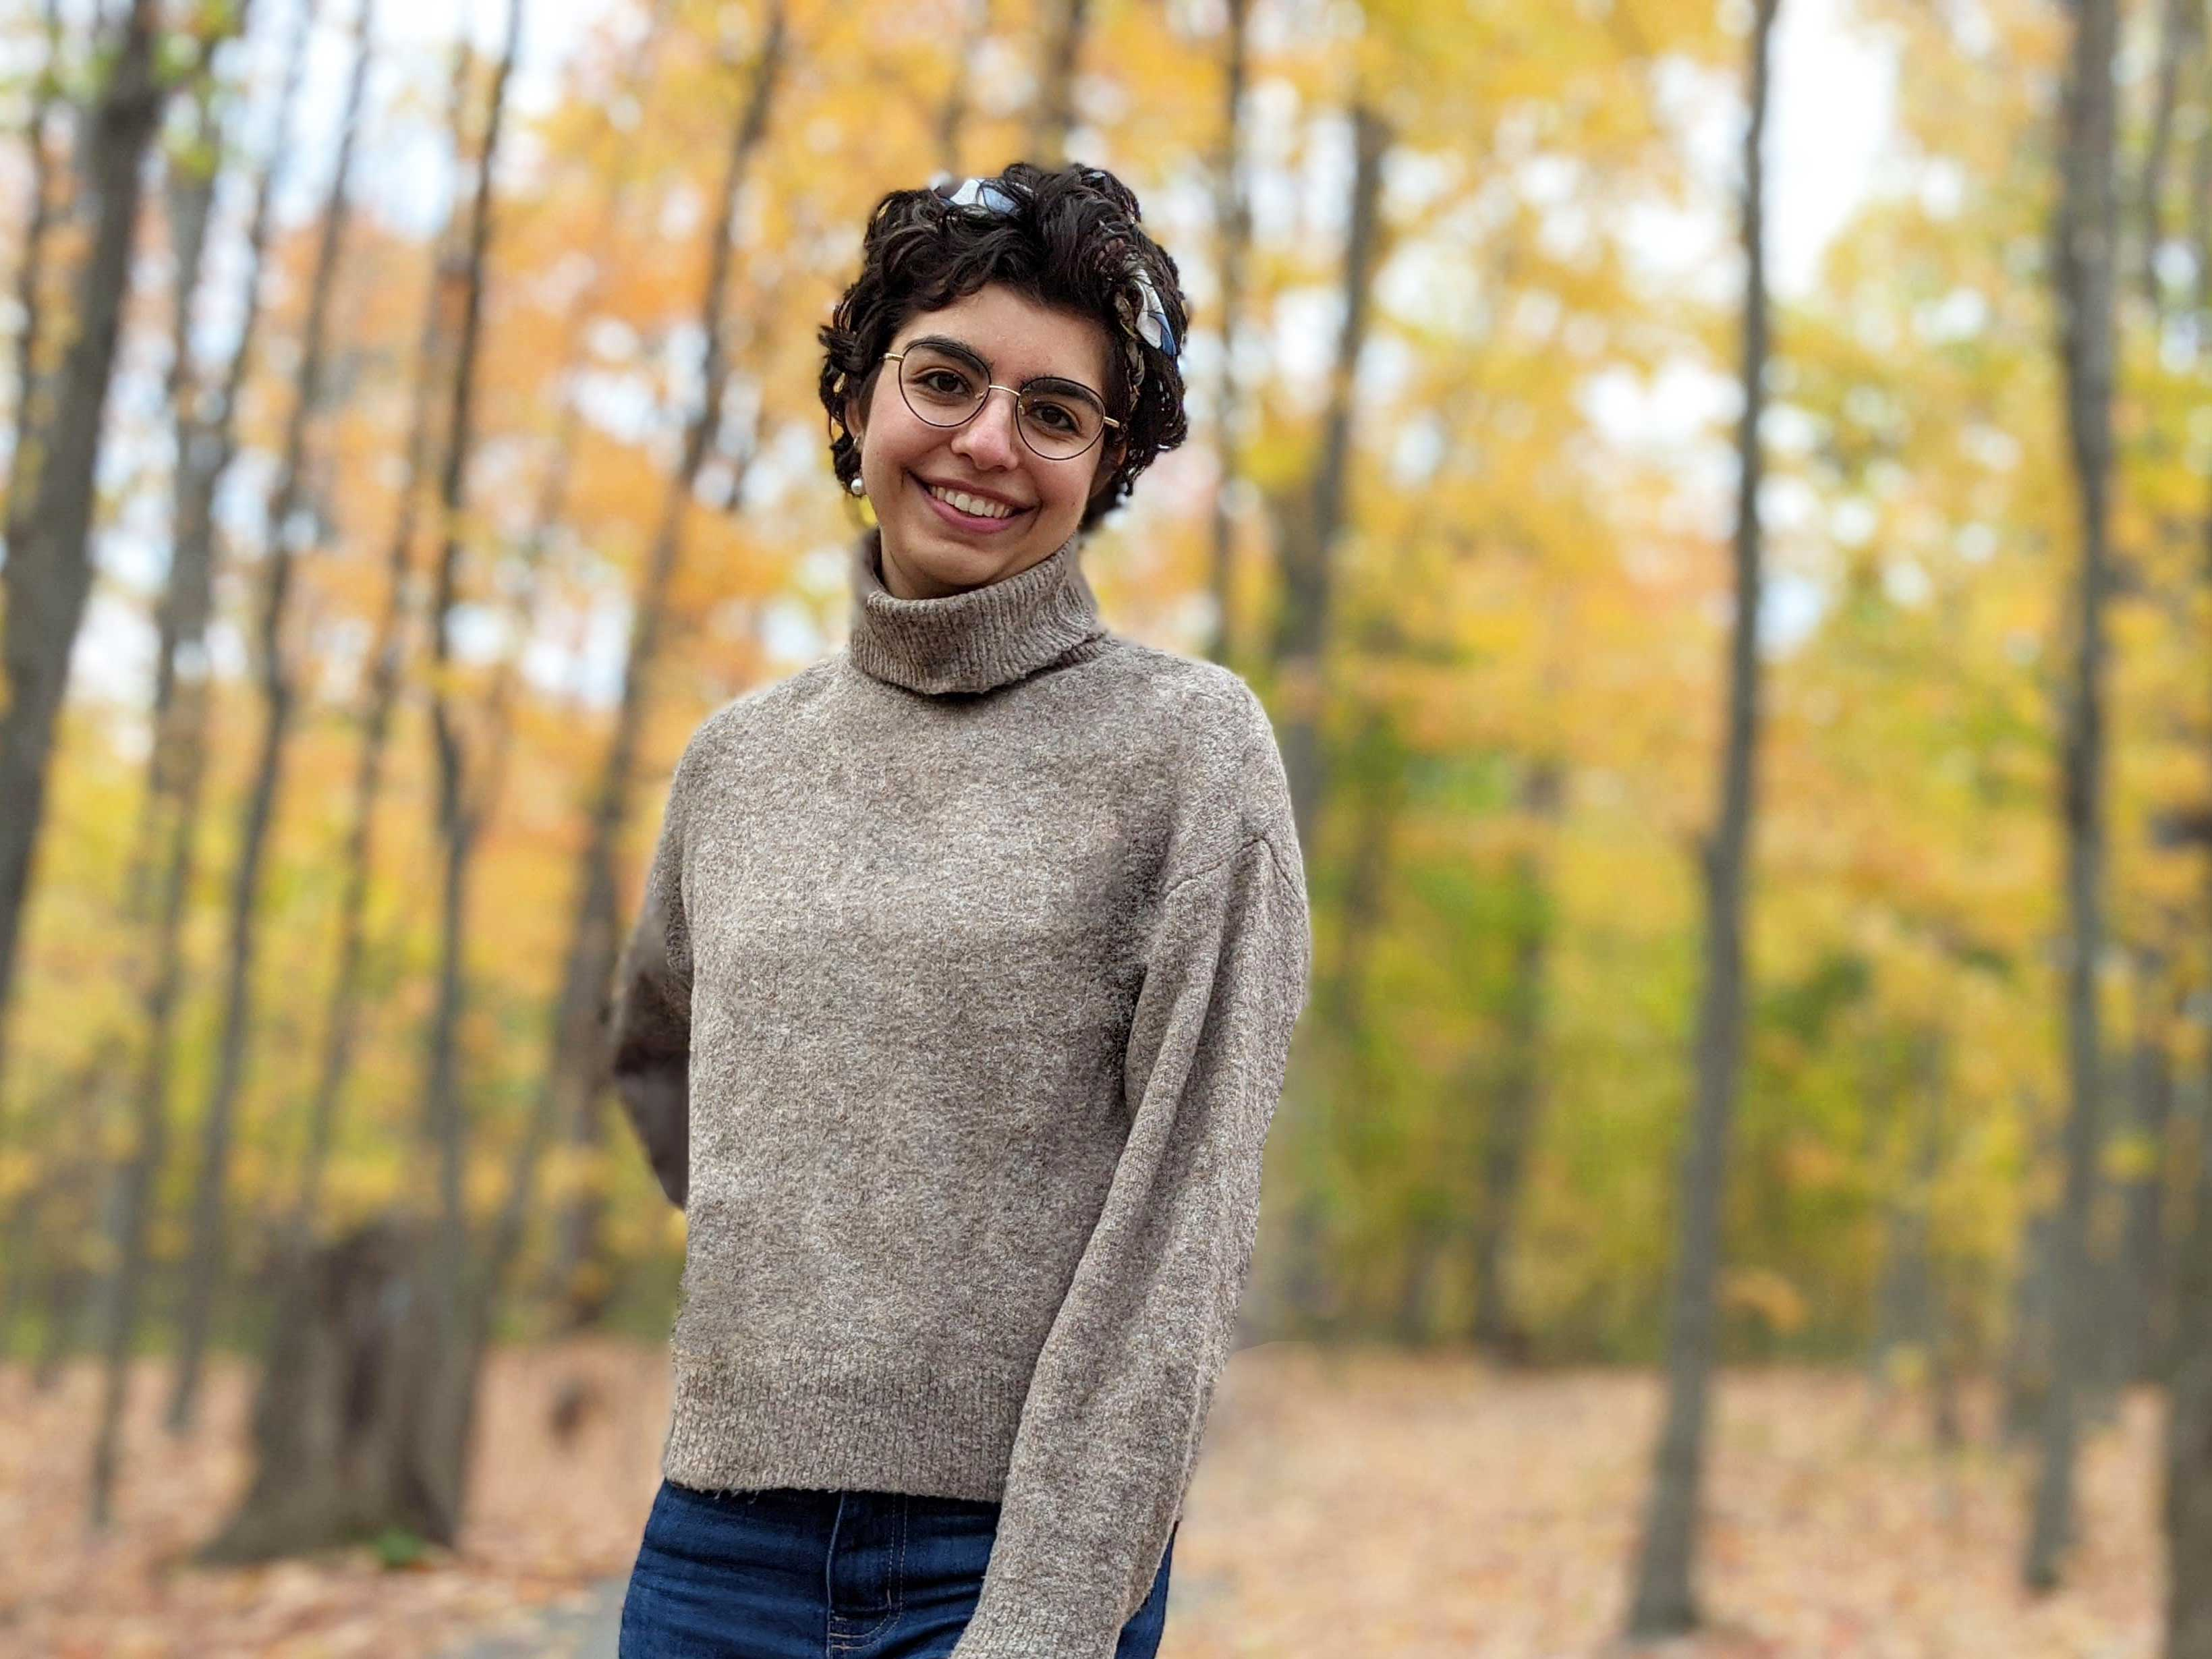 Dana smiling, wearing a turtle neck sweater in the woods